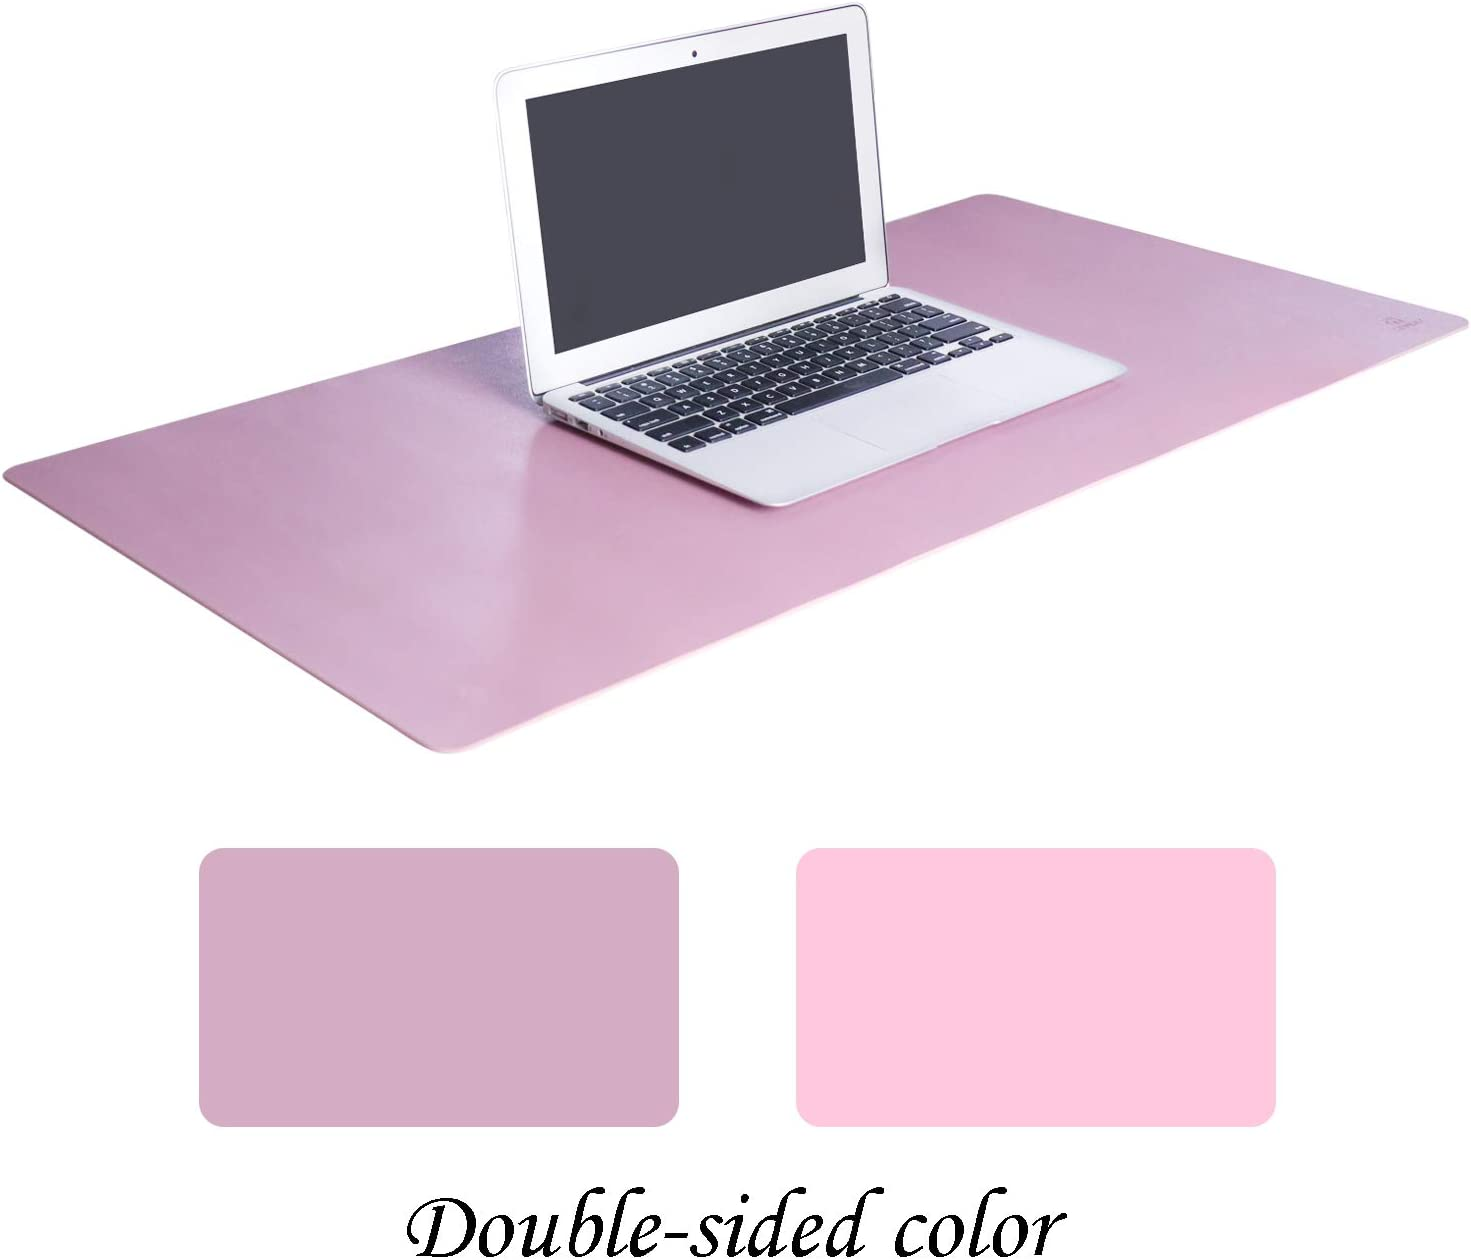 "OFFIDIX Large Office Mouse Pad, 32""x16"" Non-Slip PU Leather Two Colors Desk Mat Dual-Sided Waterproof Desktop Pad Protector Gaming Writing Mat for Office and Home (Pink and Purple, Dual-Sided)"